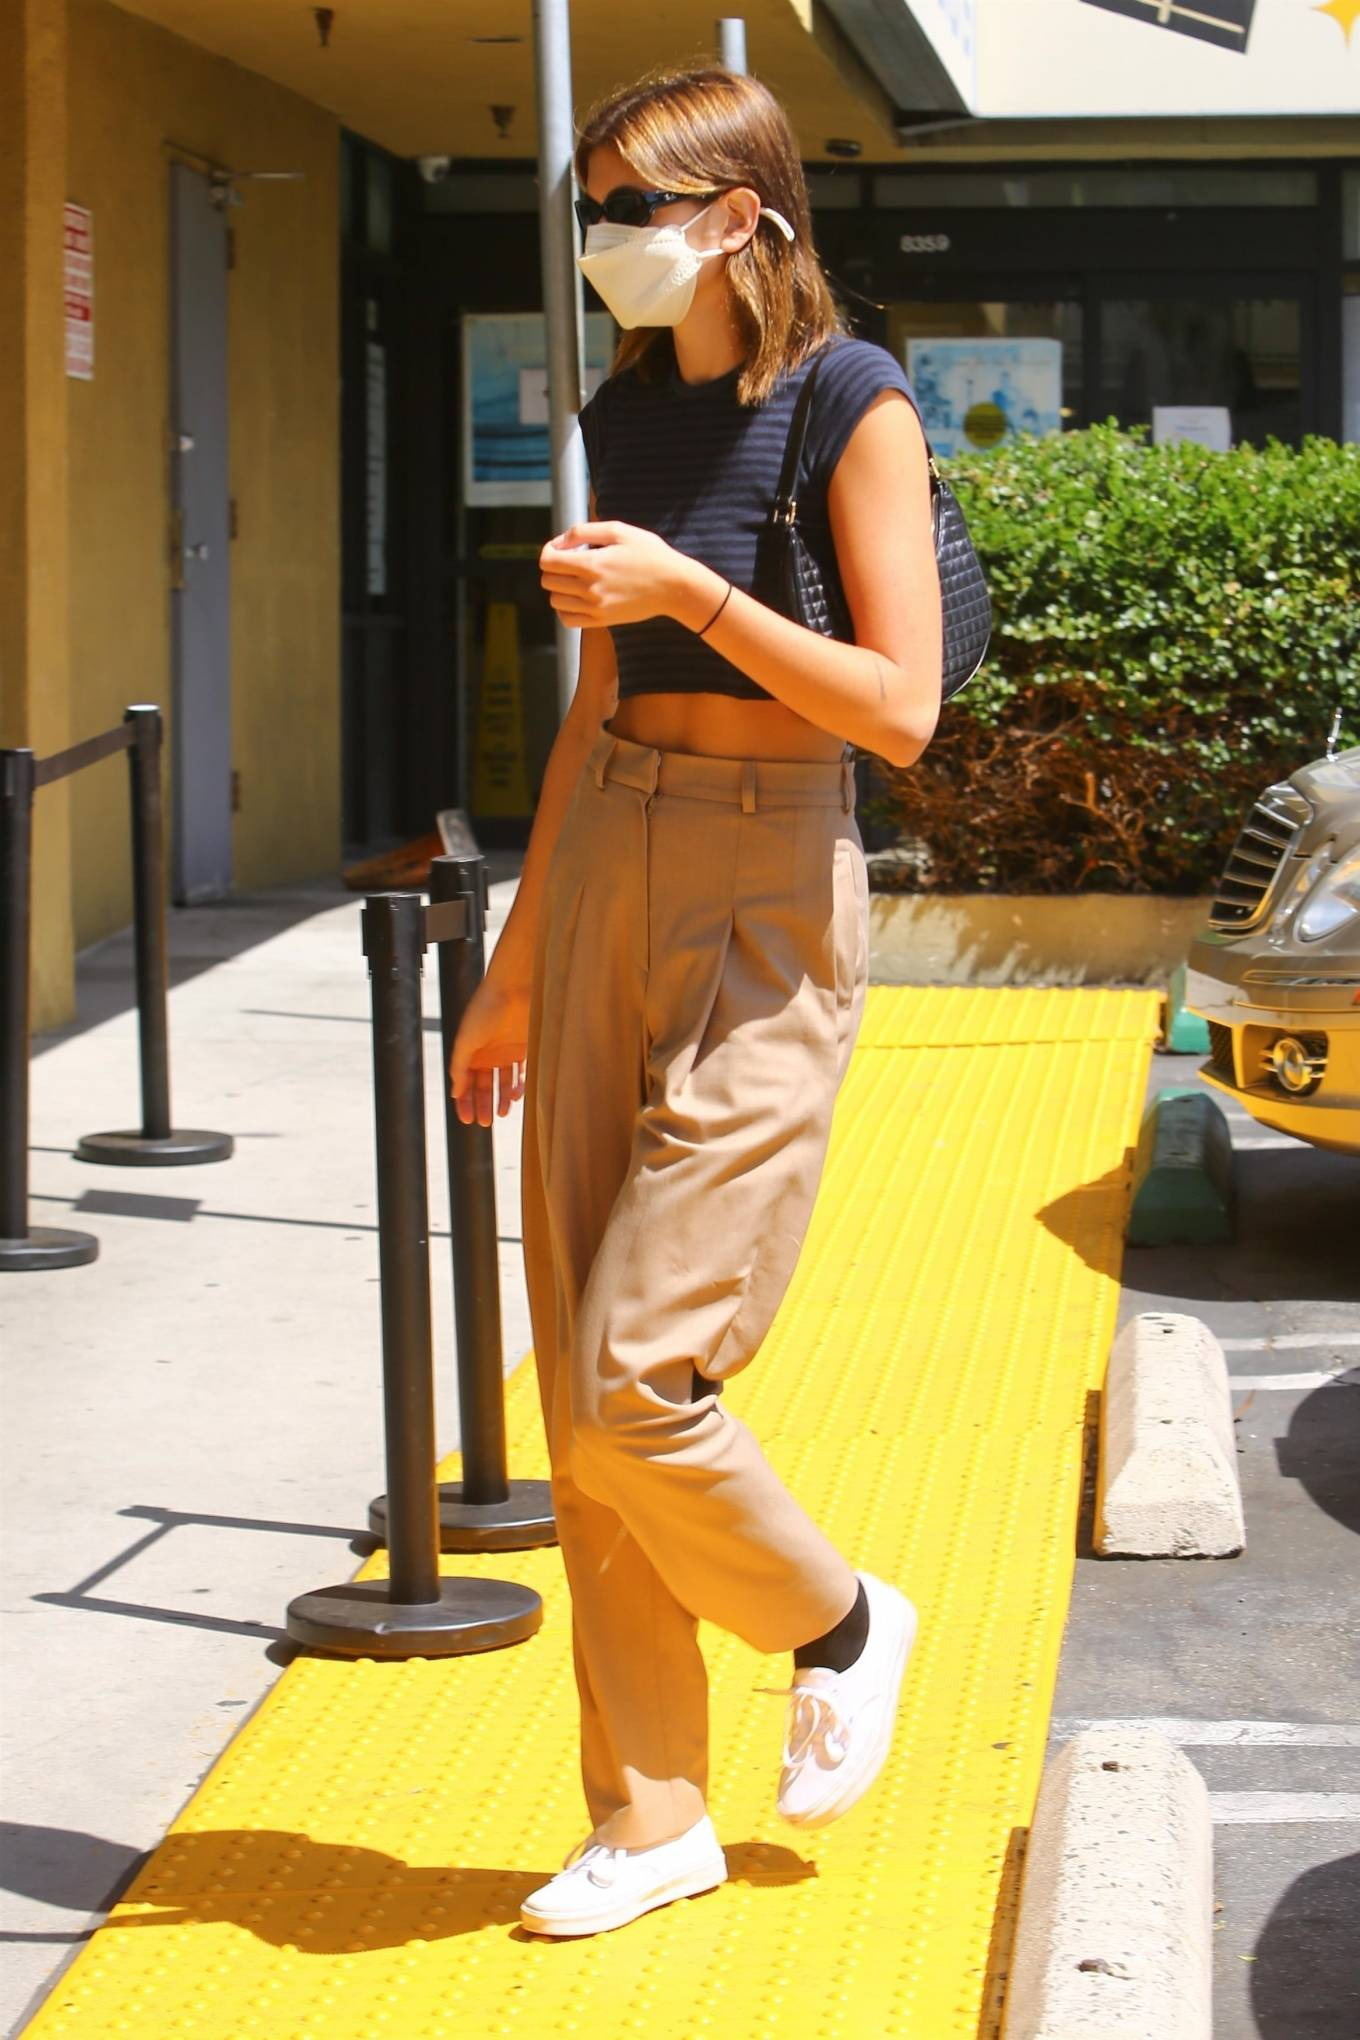 Kaia Gerber - Pictured at Earth Bar in West Hollywood